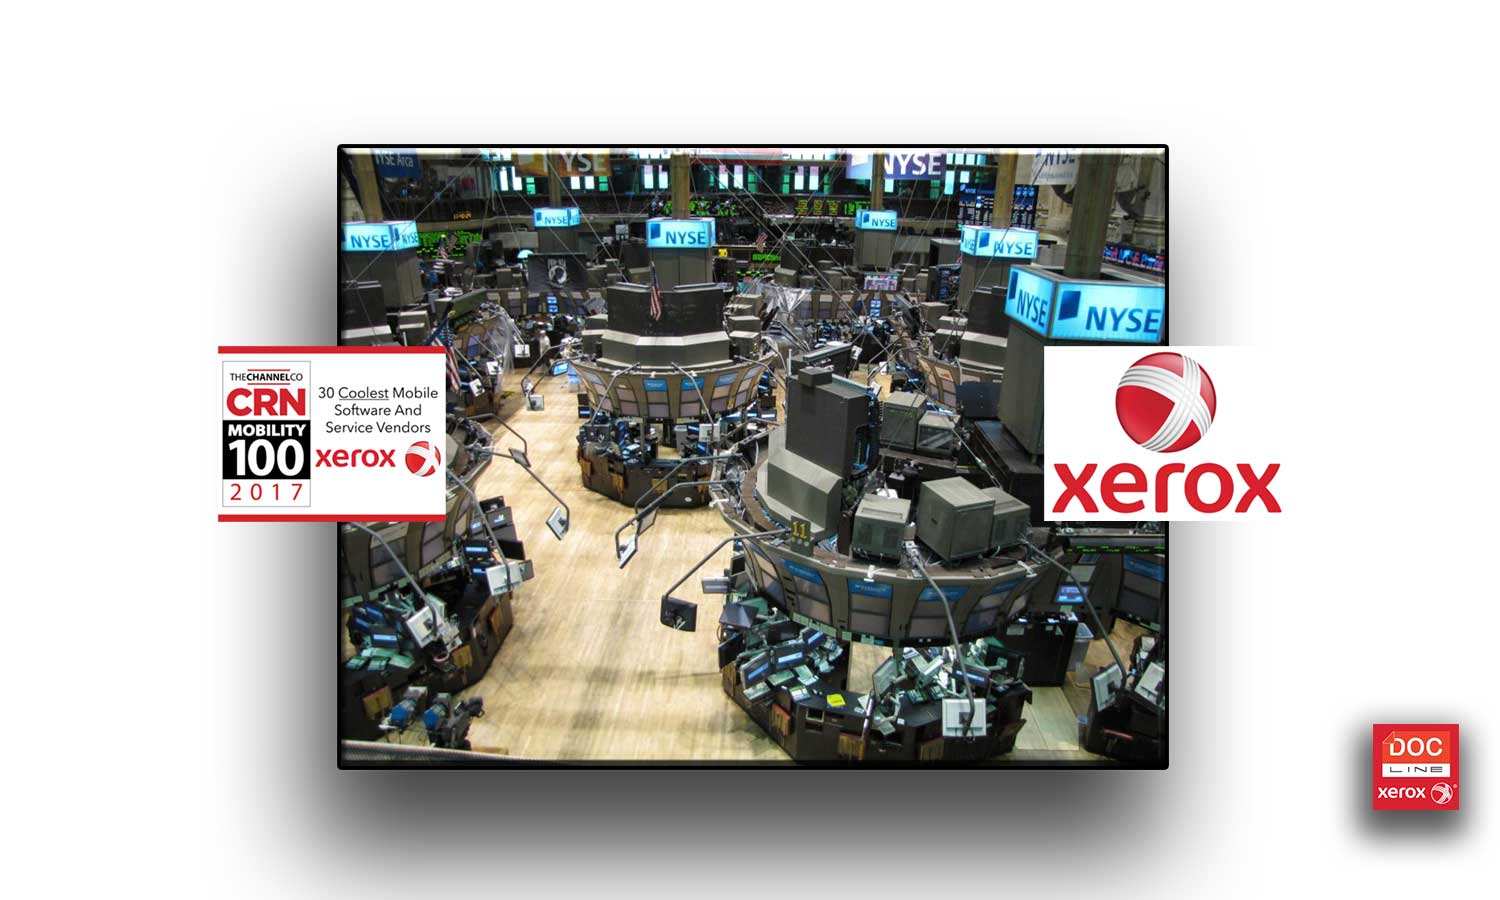 xerox docline solutions-bourse-xerox-actions-dividendes